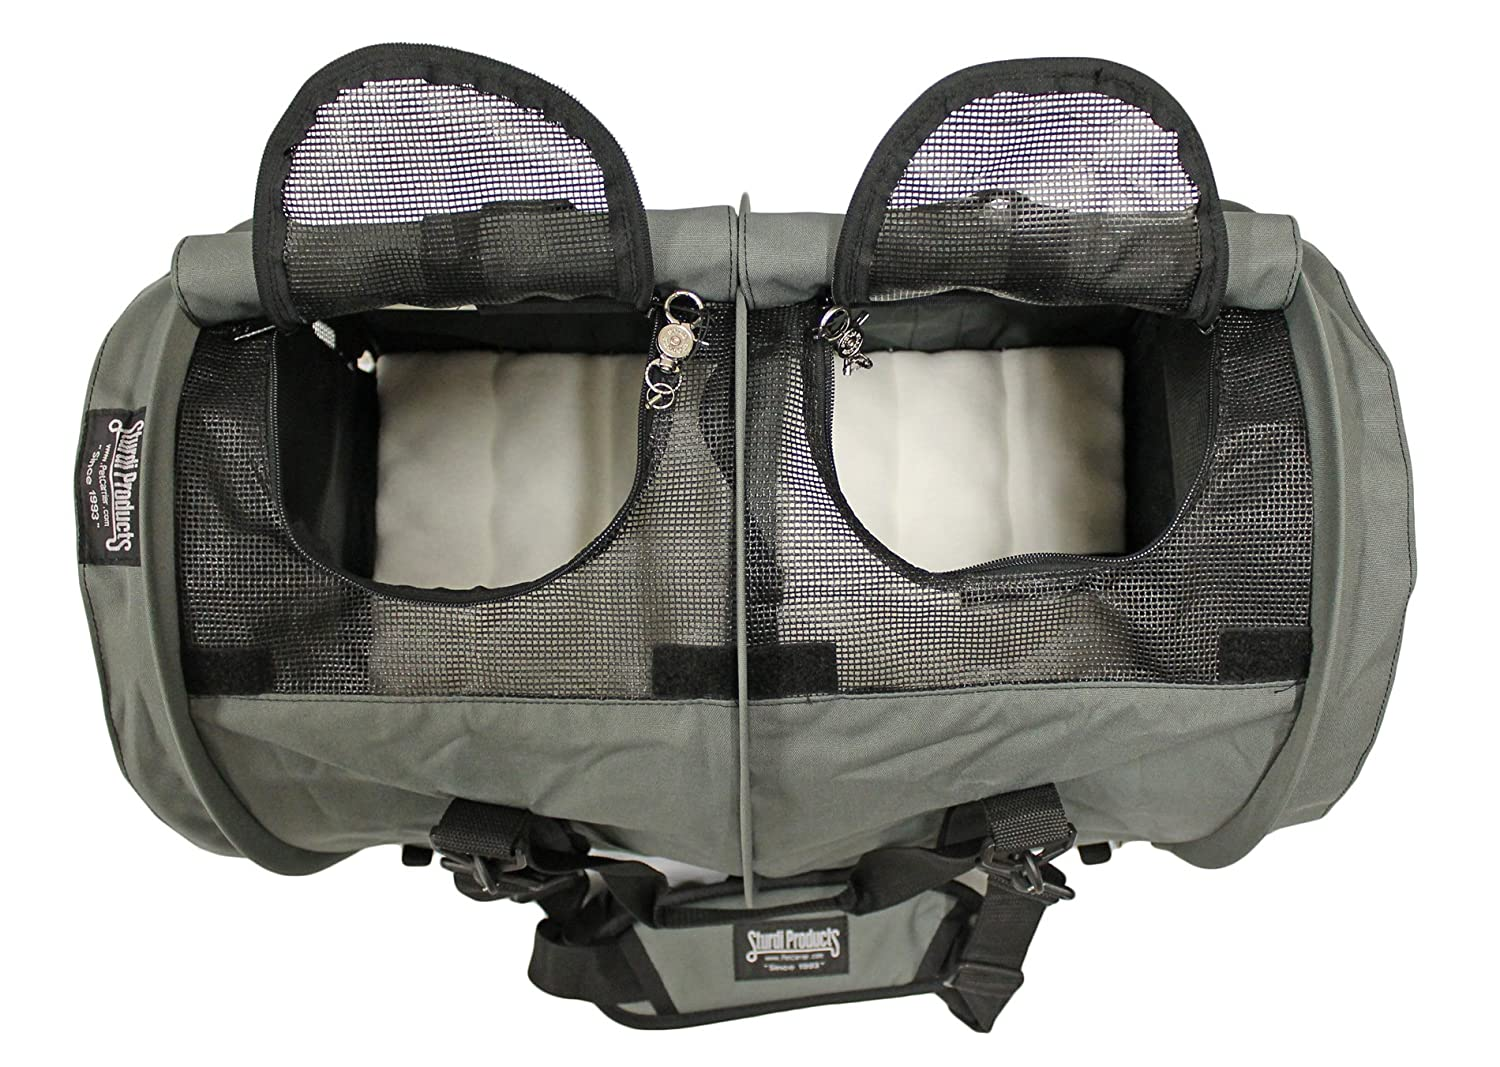 93777bac99 X-Large Black SB3D-B Sturdi Products SturdiBag Double Sided Divided Pet  Carrier